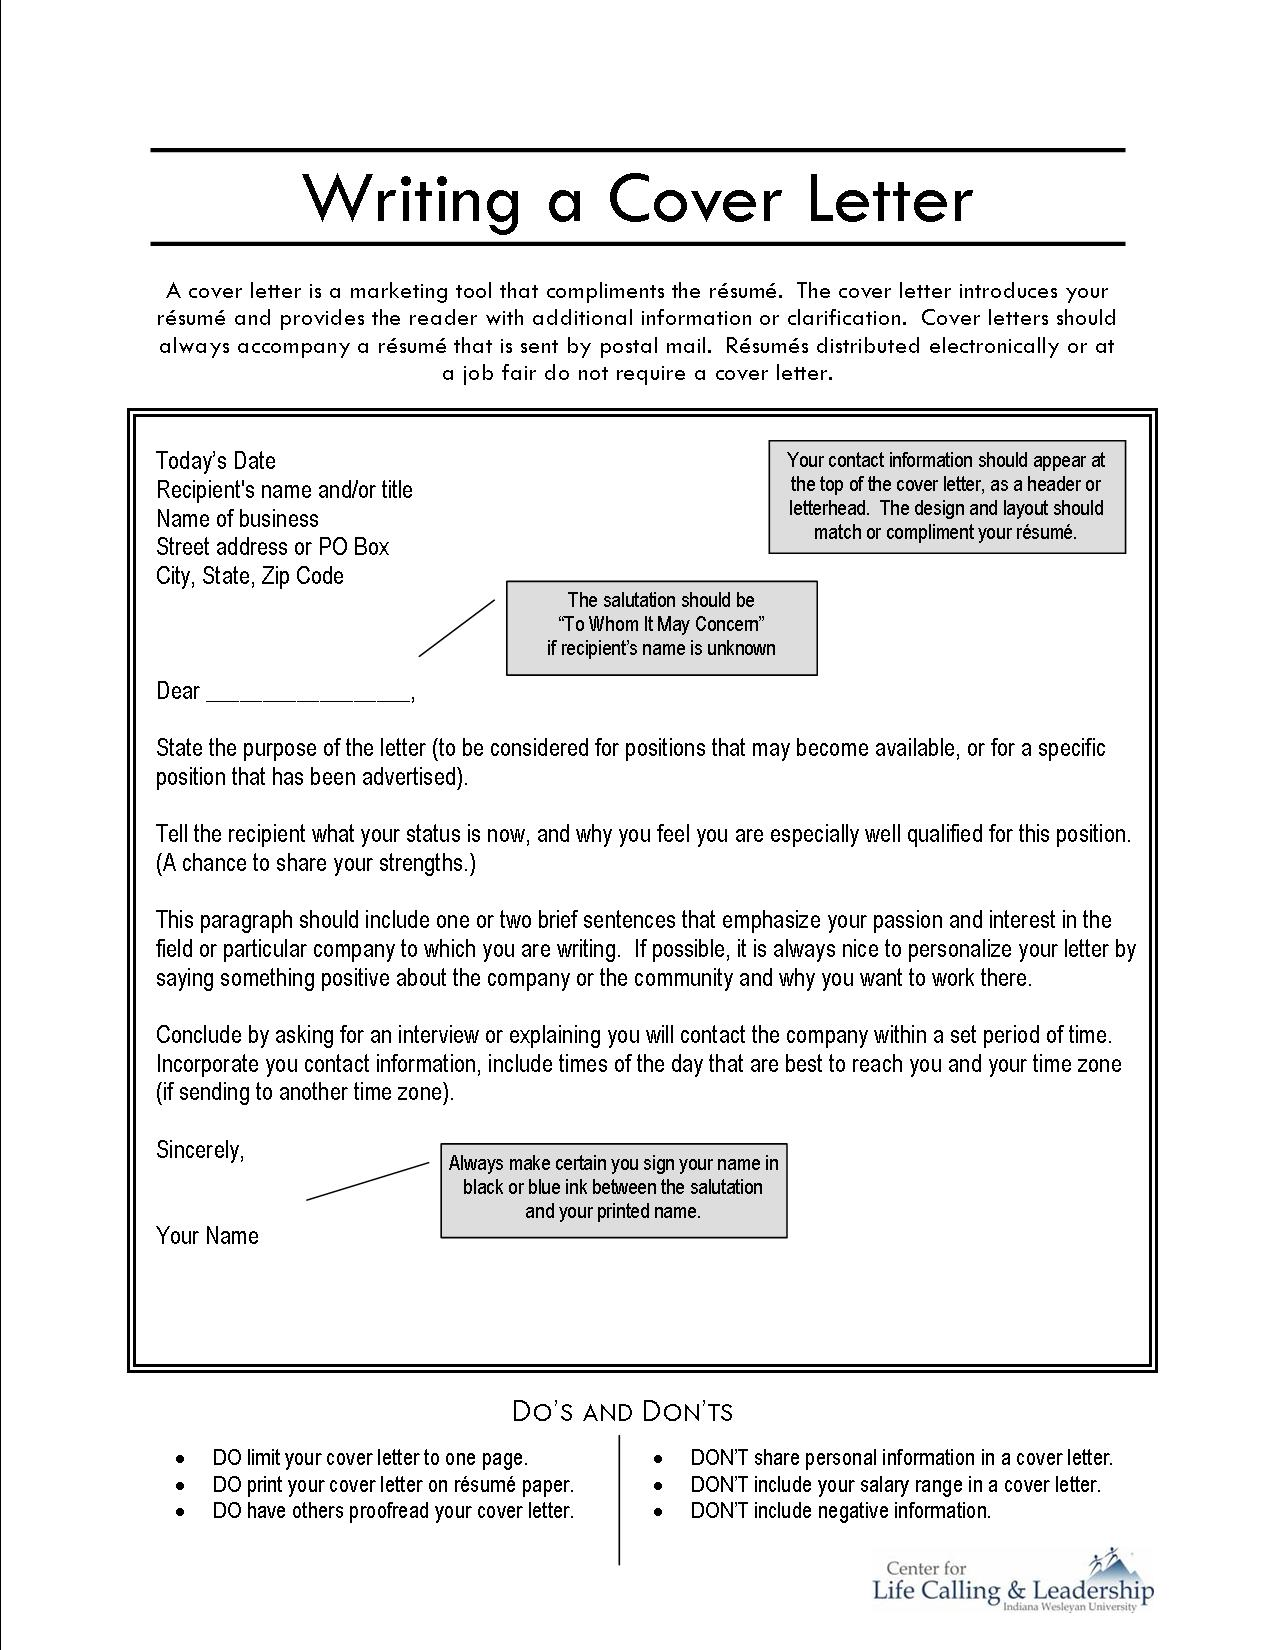 how to make a cover letter templates